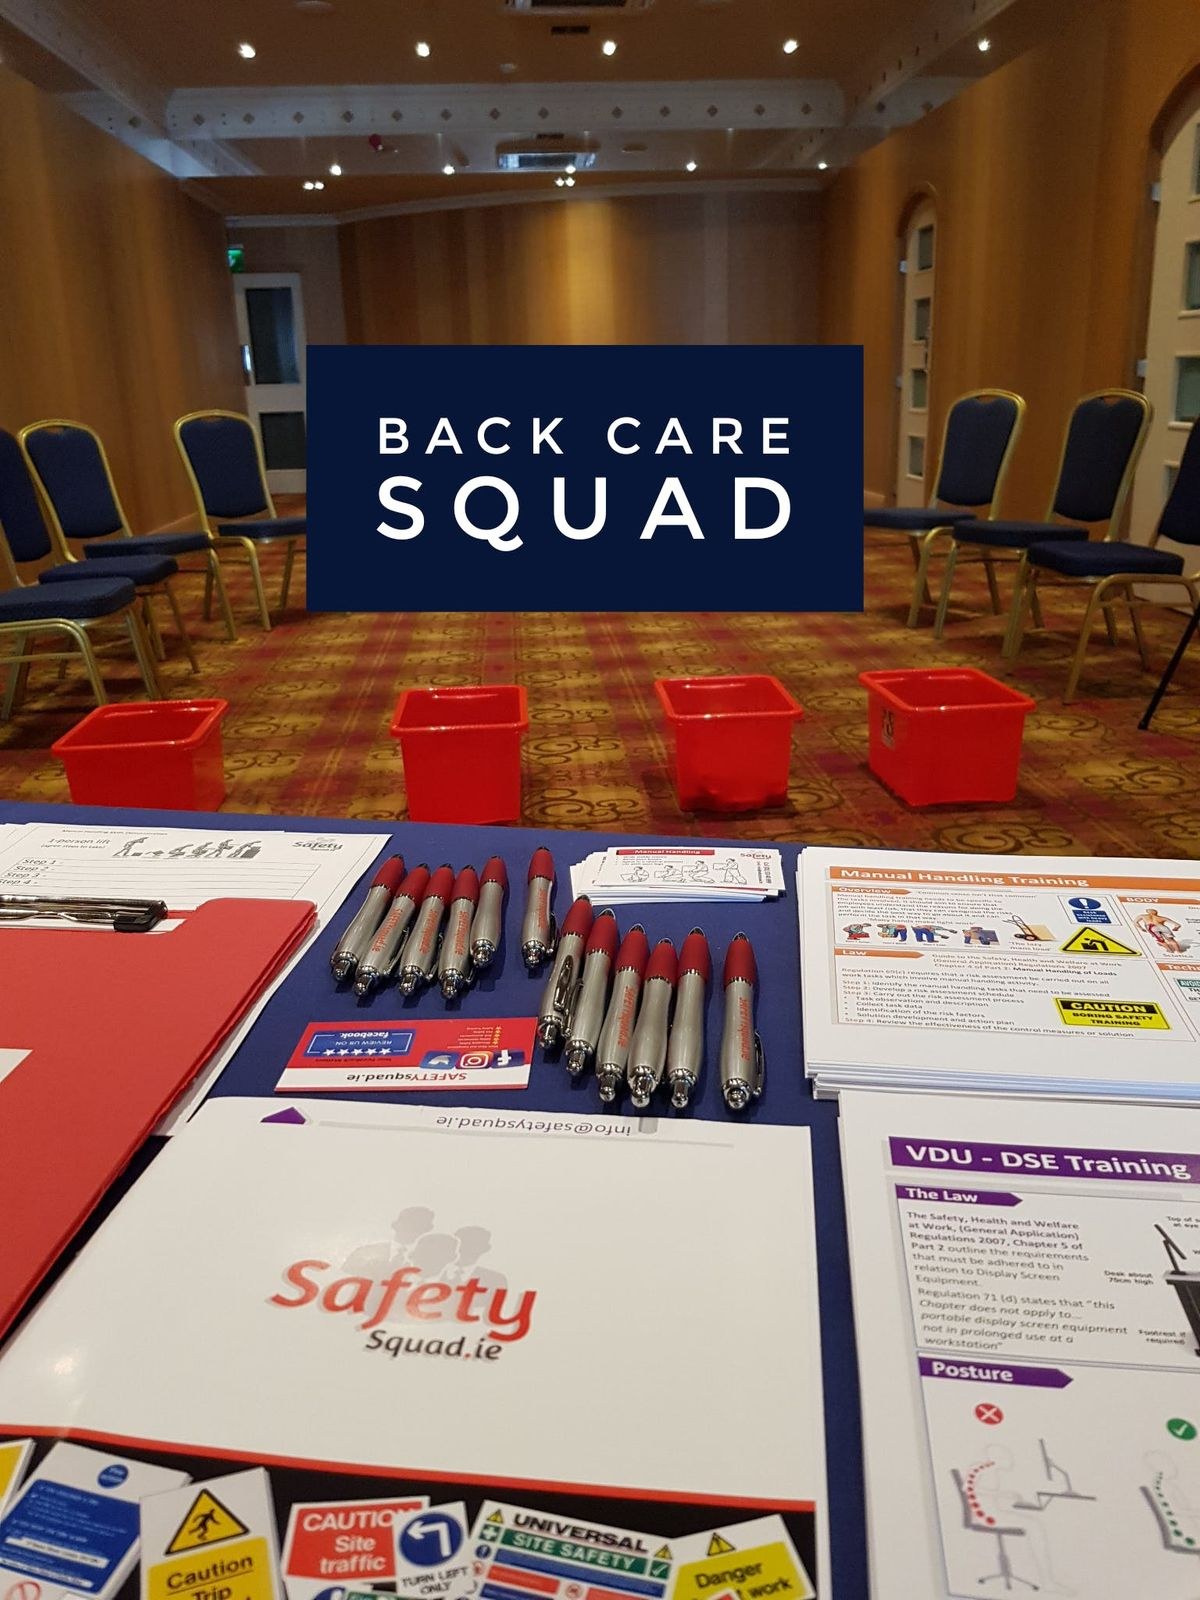 Manual Handling Course - infosafetysquad.ie